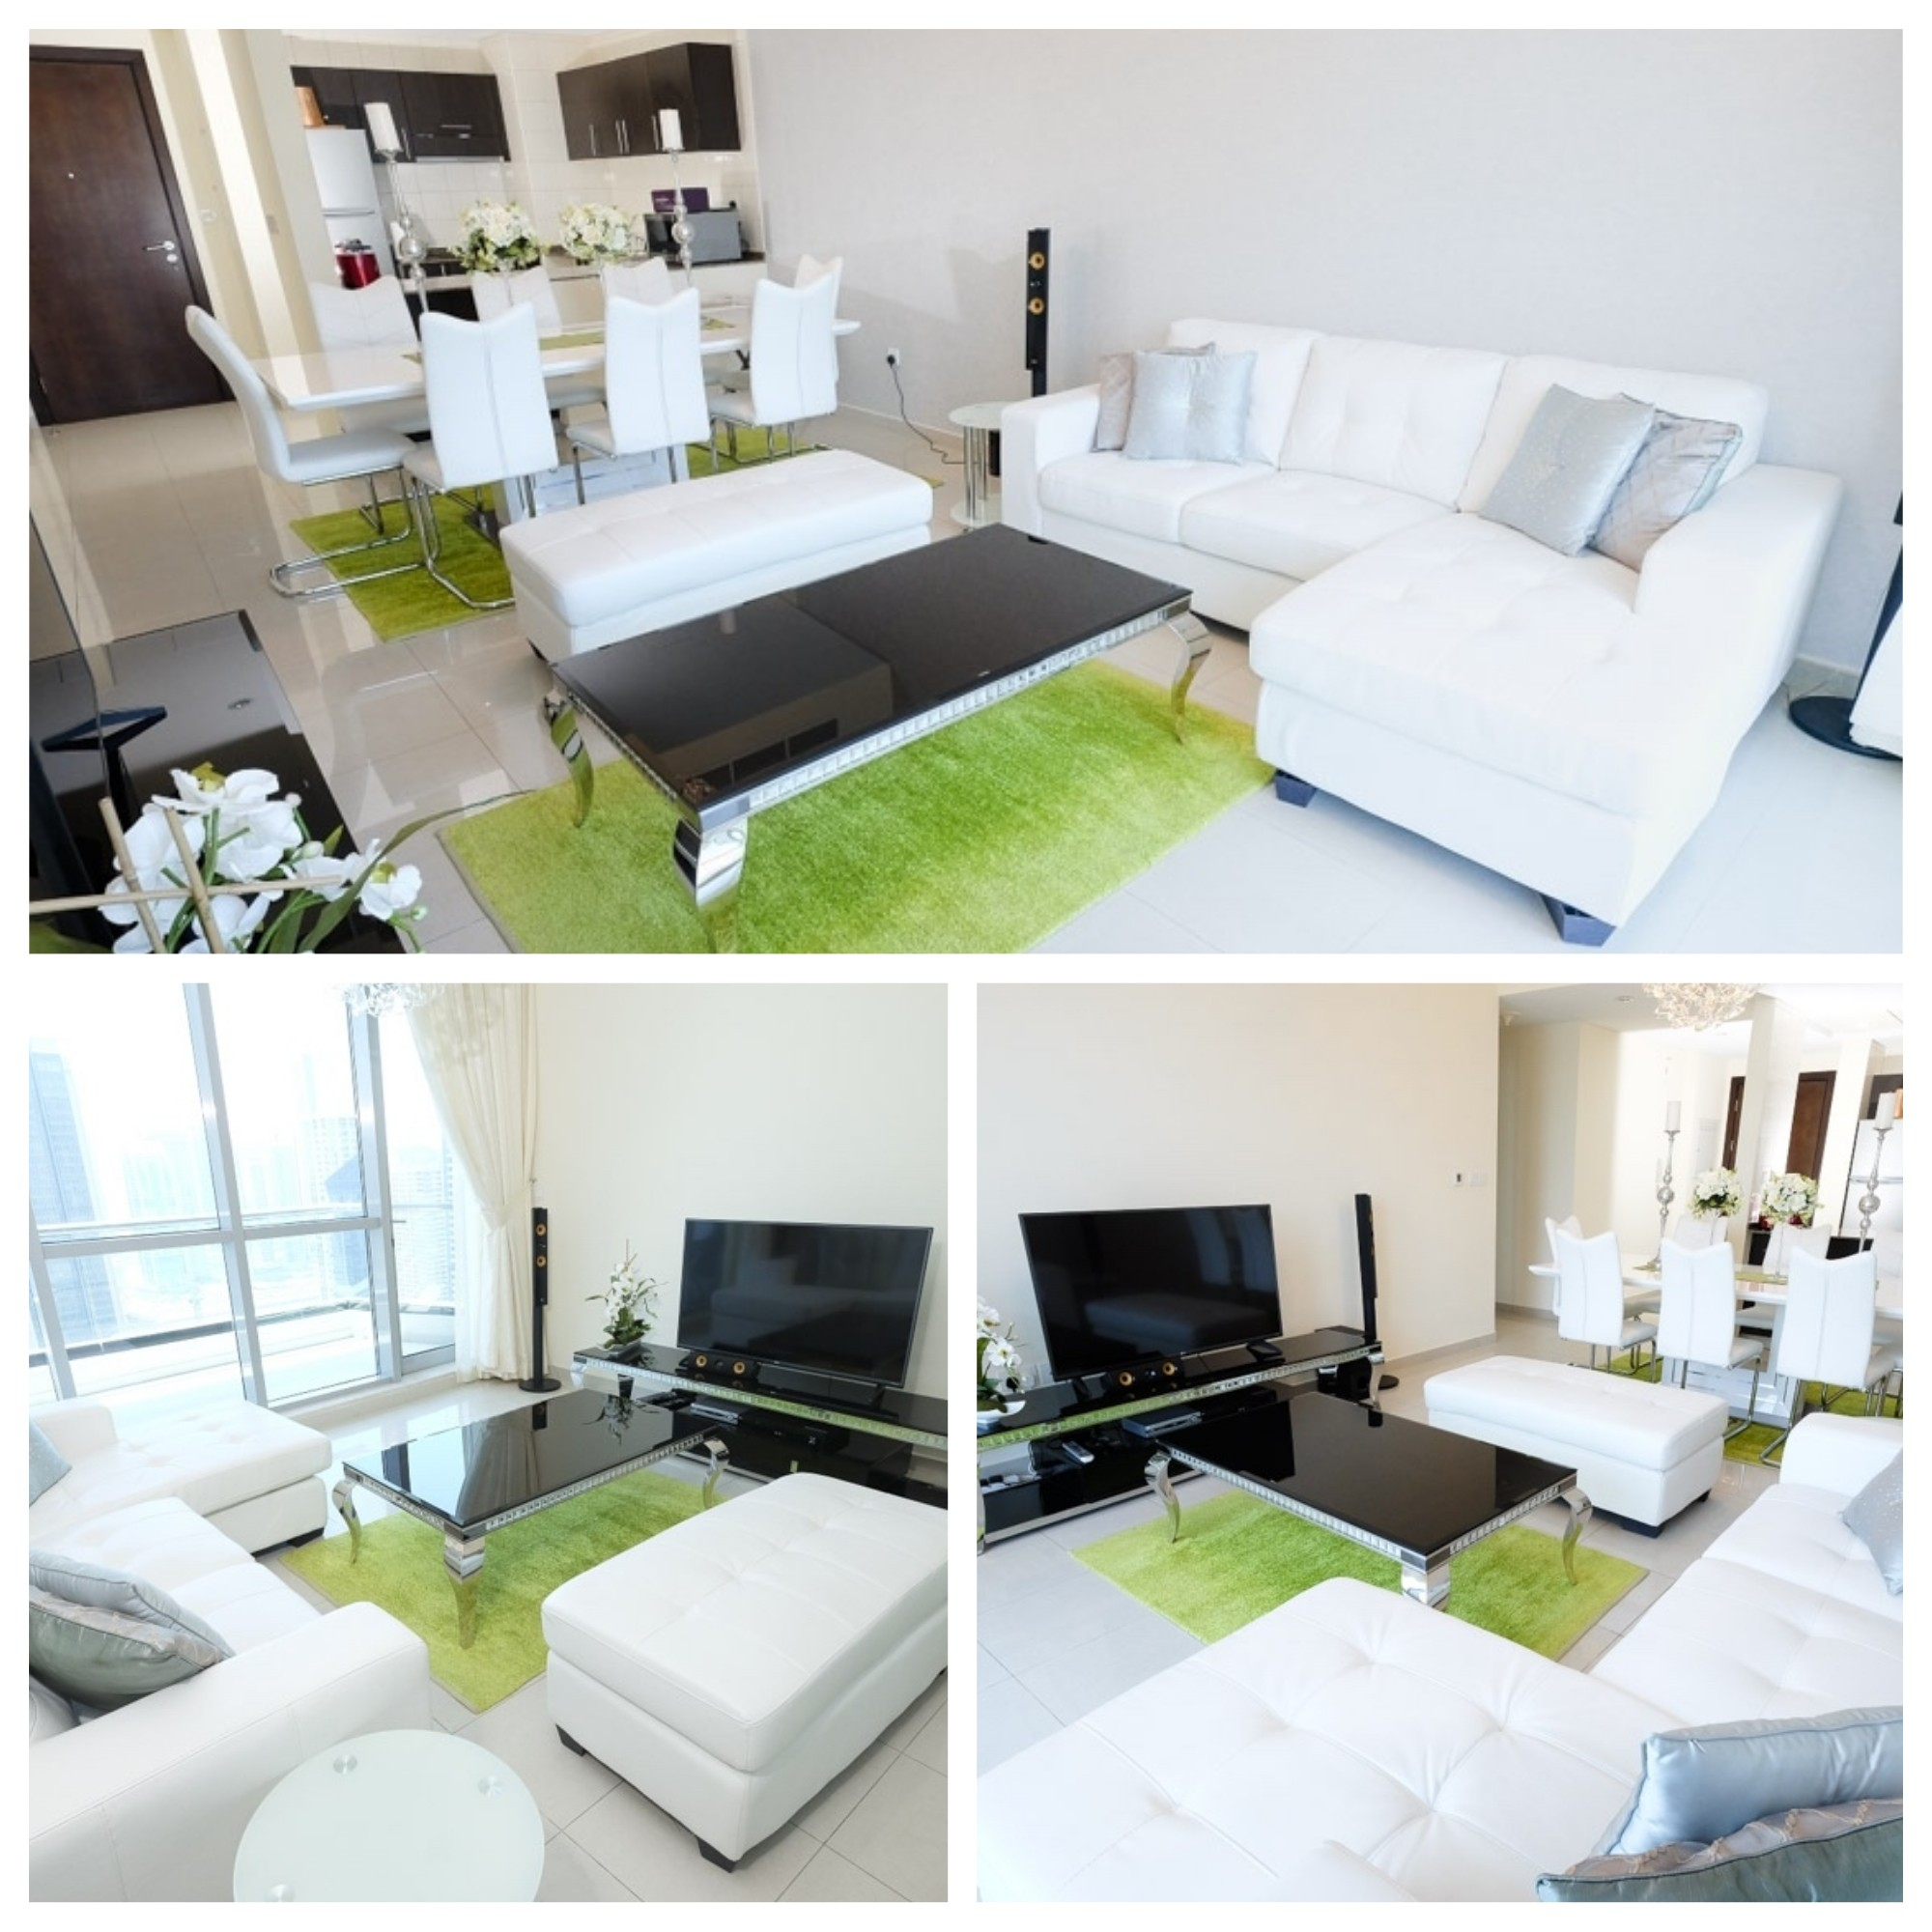 ... Apartment In Dubai   High Rise Waterfront 3 Bedroom Apartment ...